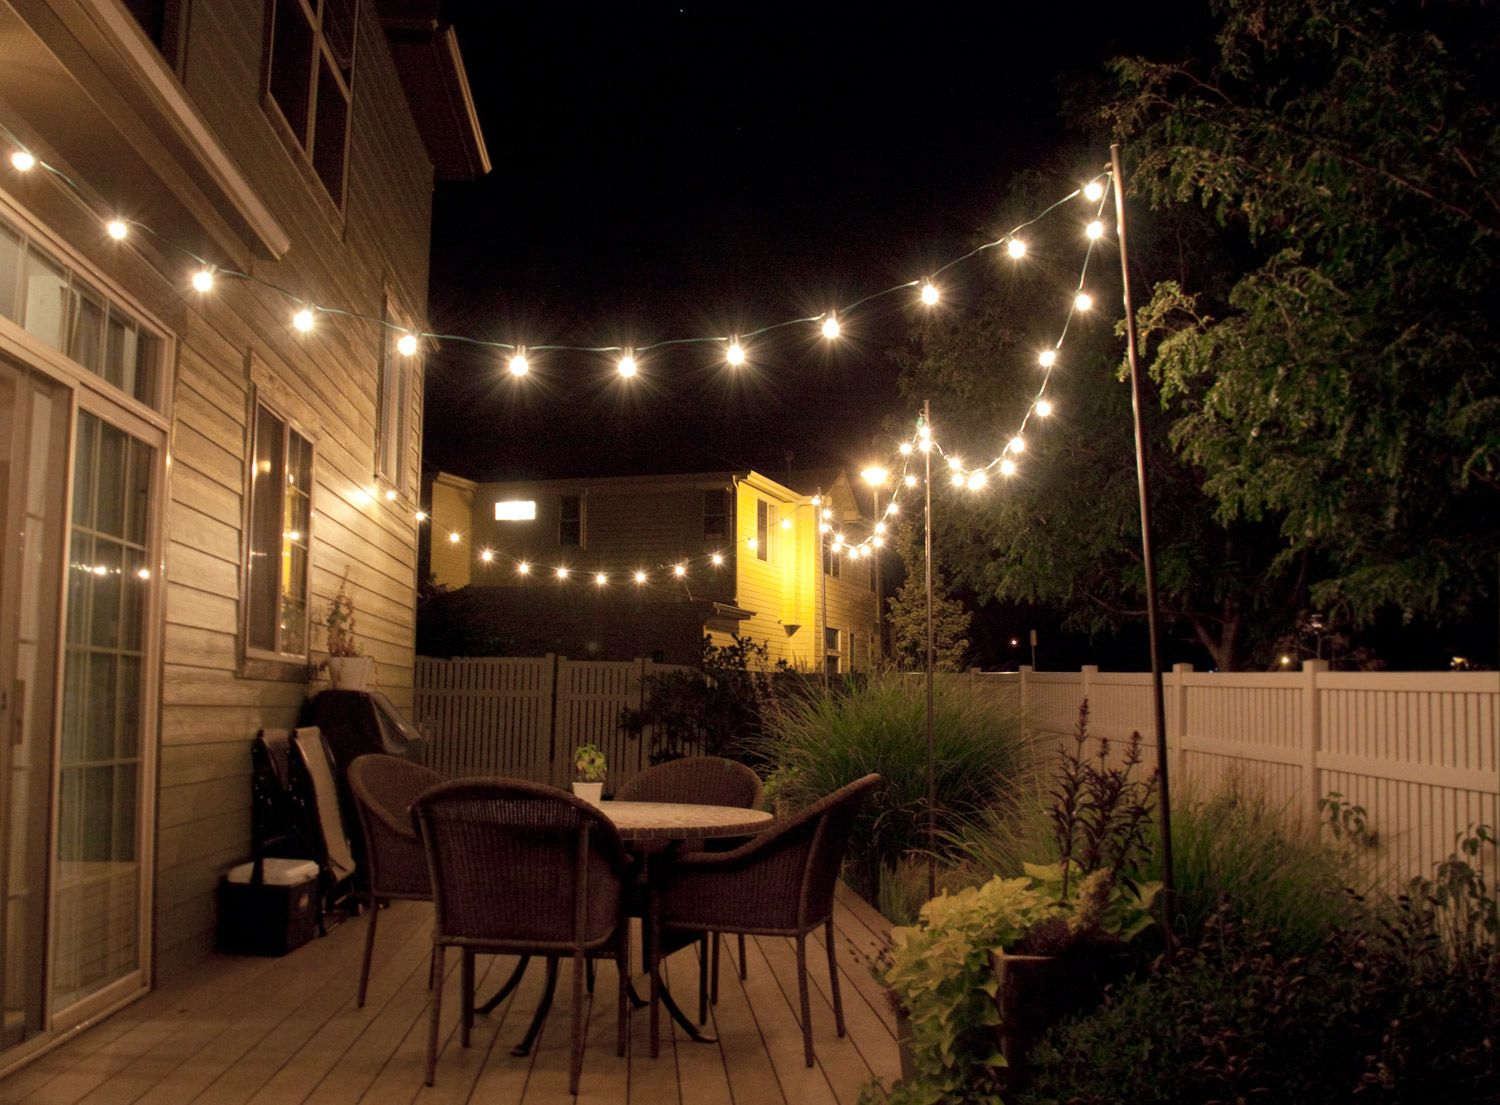 How to make inexpensive poles to hang string lights on - café style! Via Bright July : outdoor lights patio - www.canuckmediamonitor.org